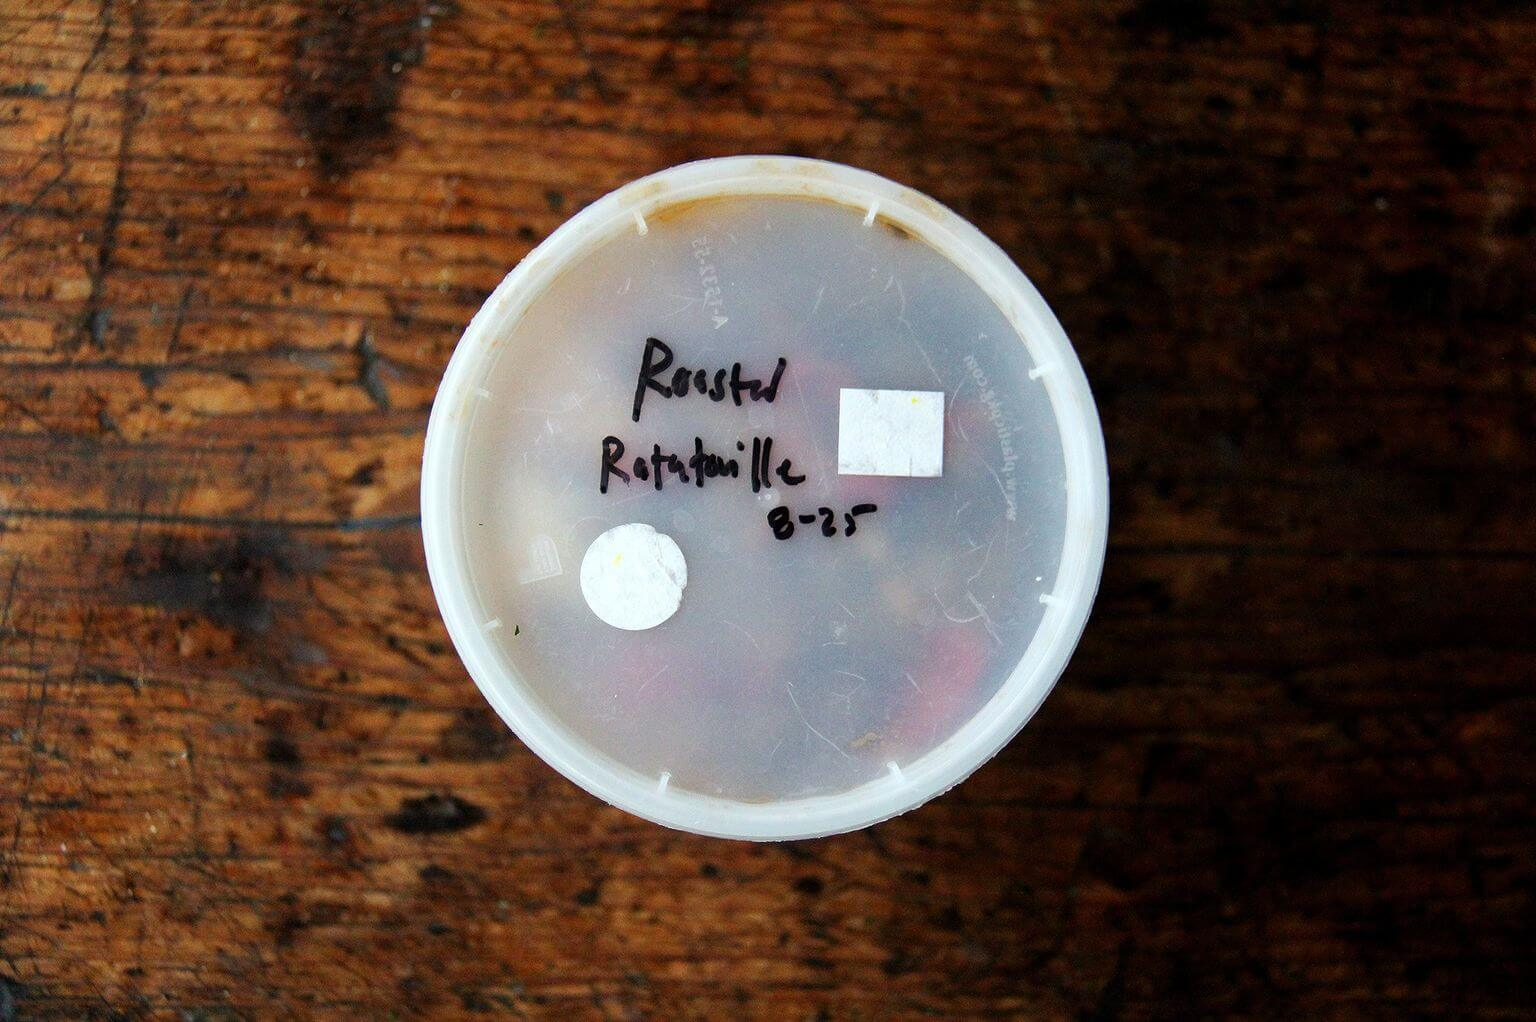 A quart container packed with roasted ratatouille.